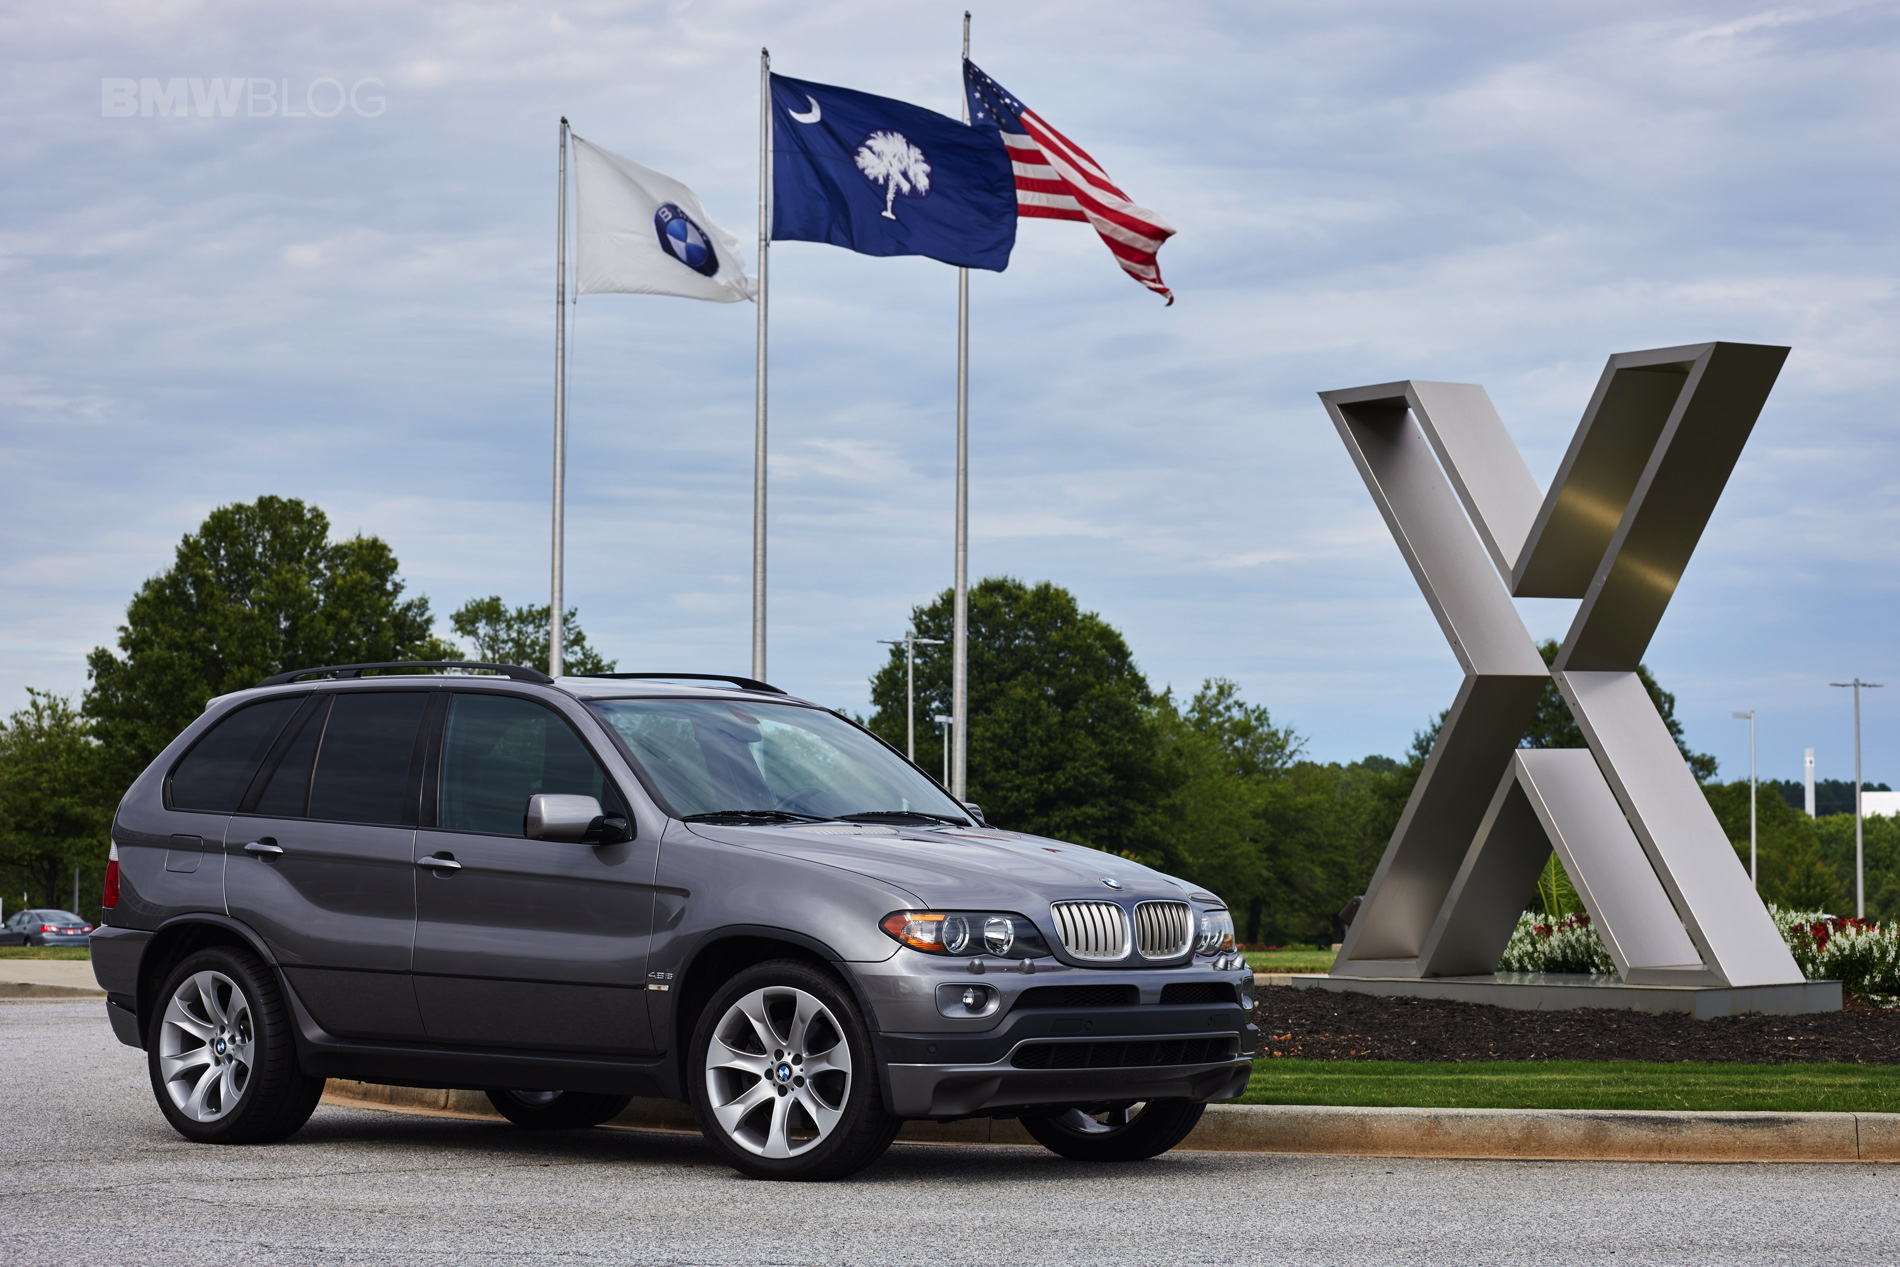 BMW Spartanburg 2017 07